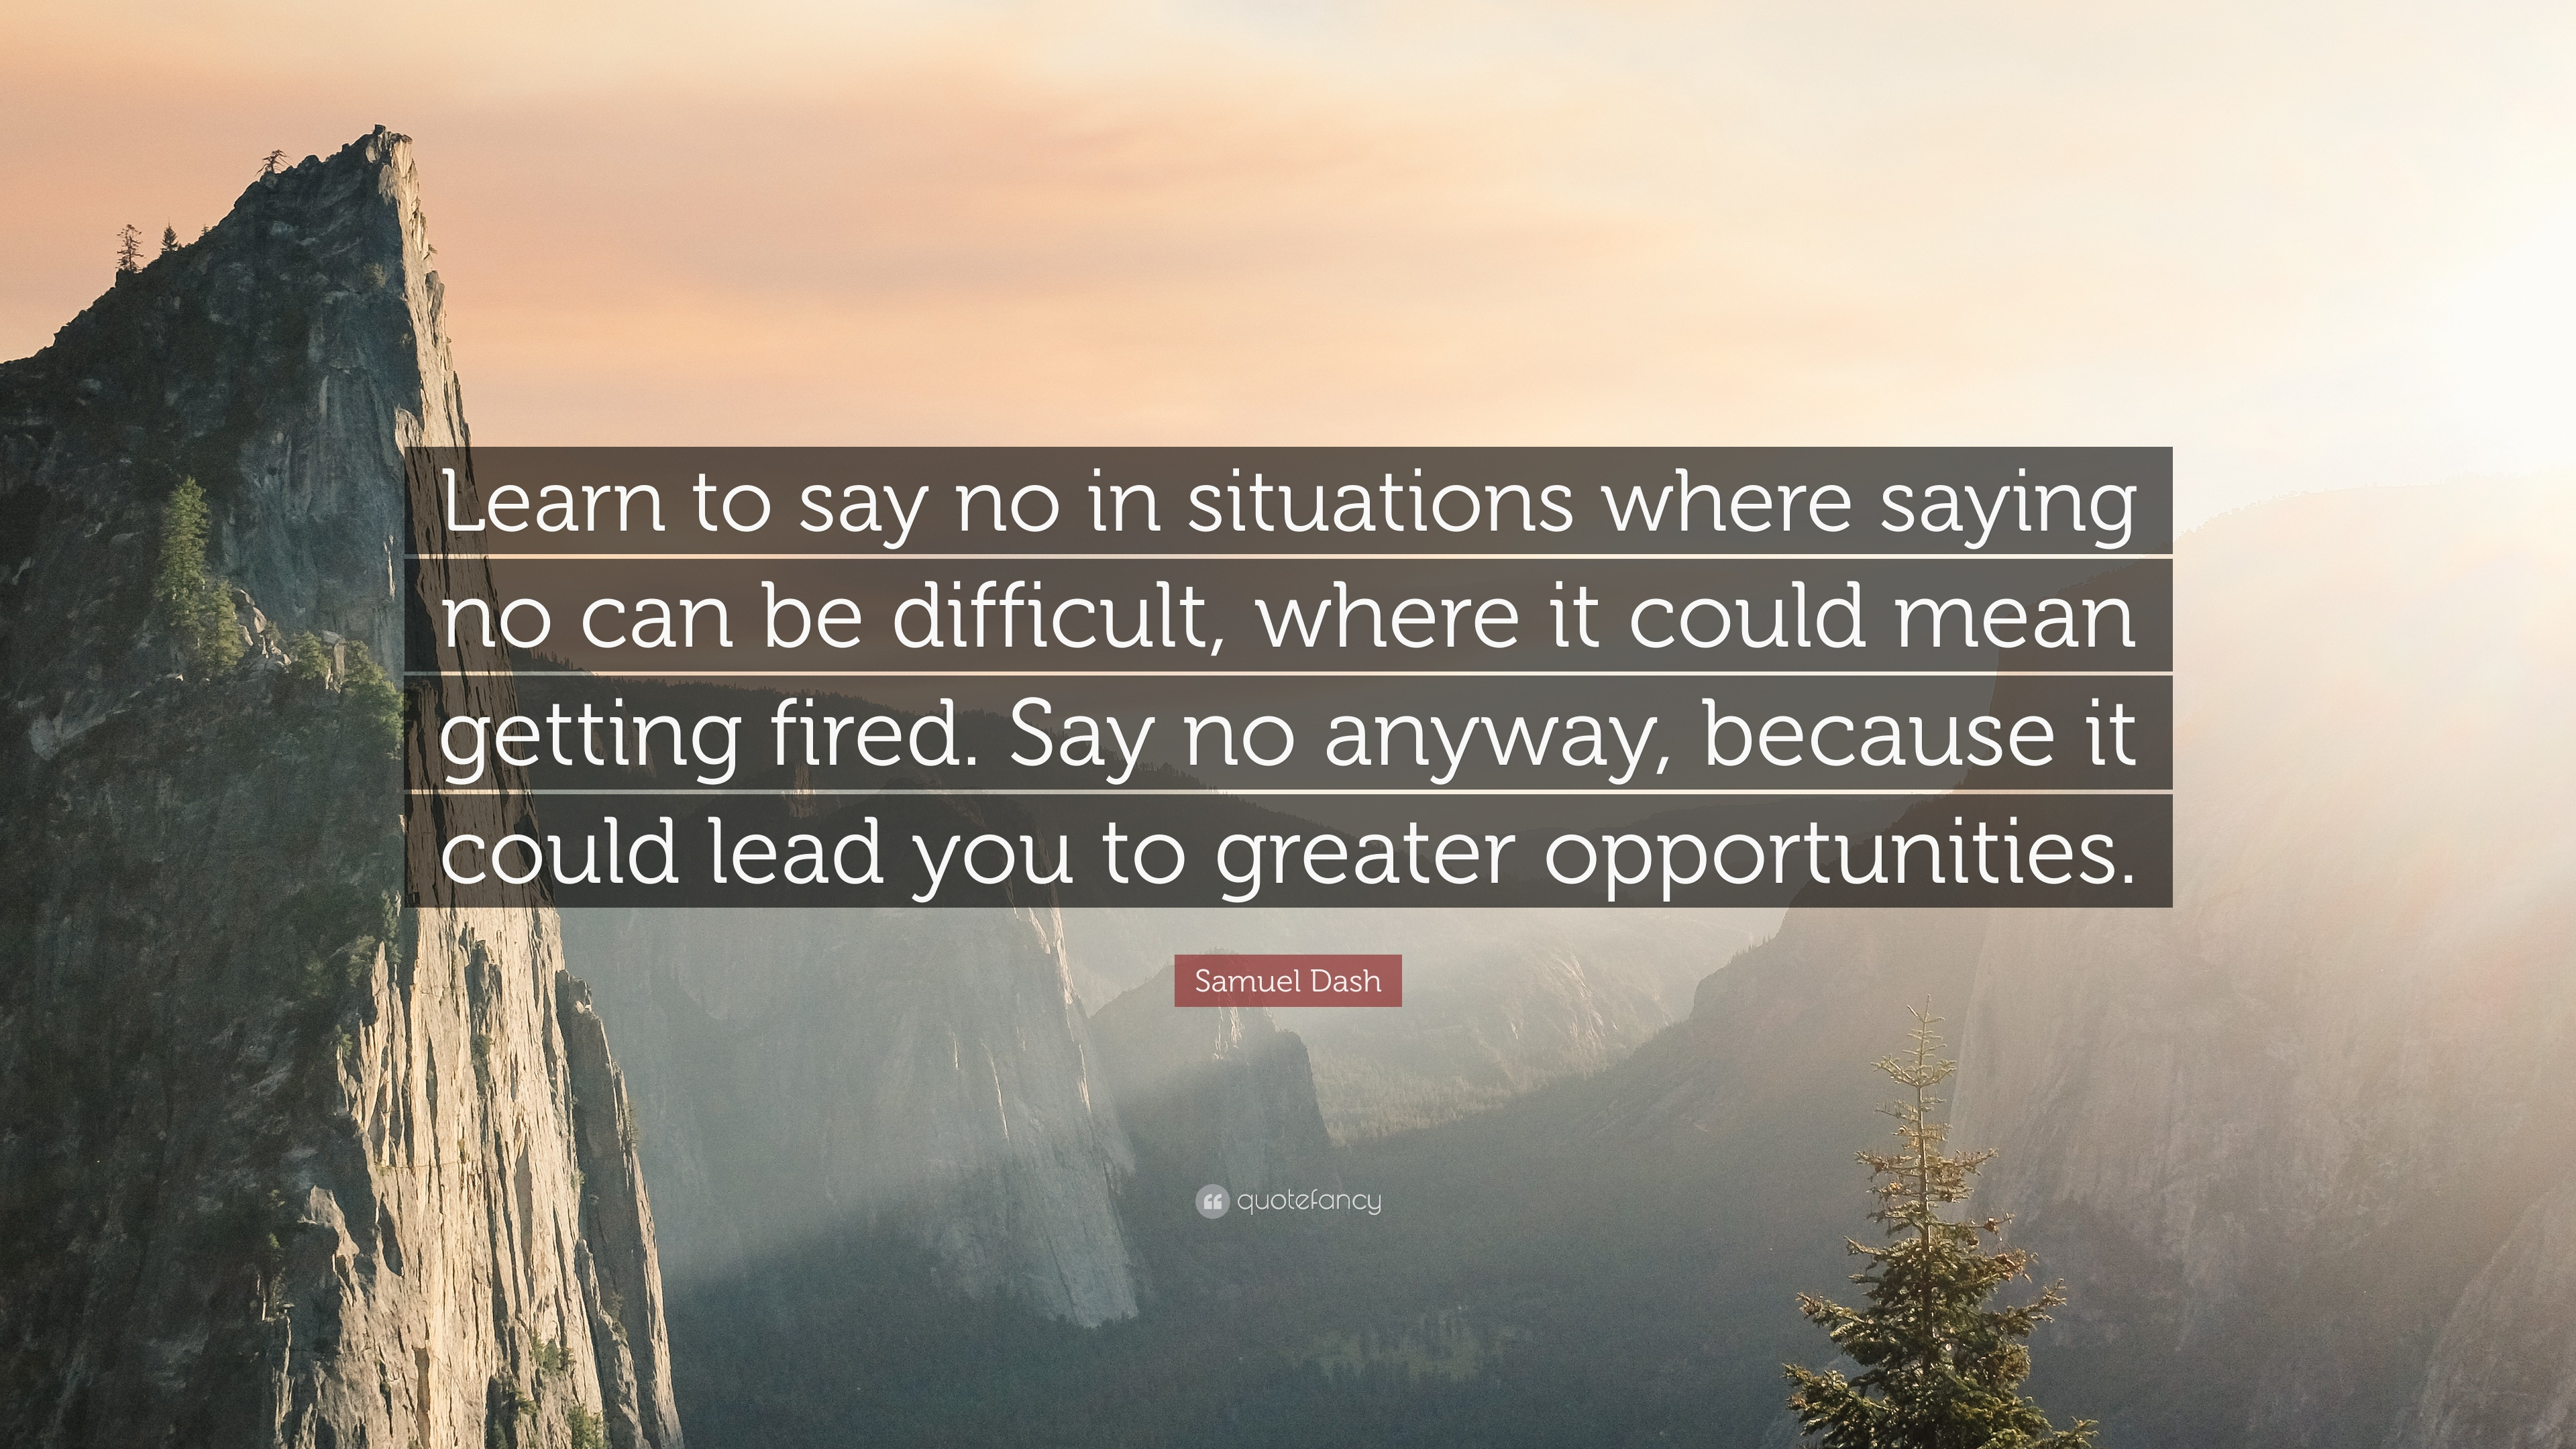 samuel dash quote learn to say no in situations where saying no